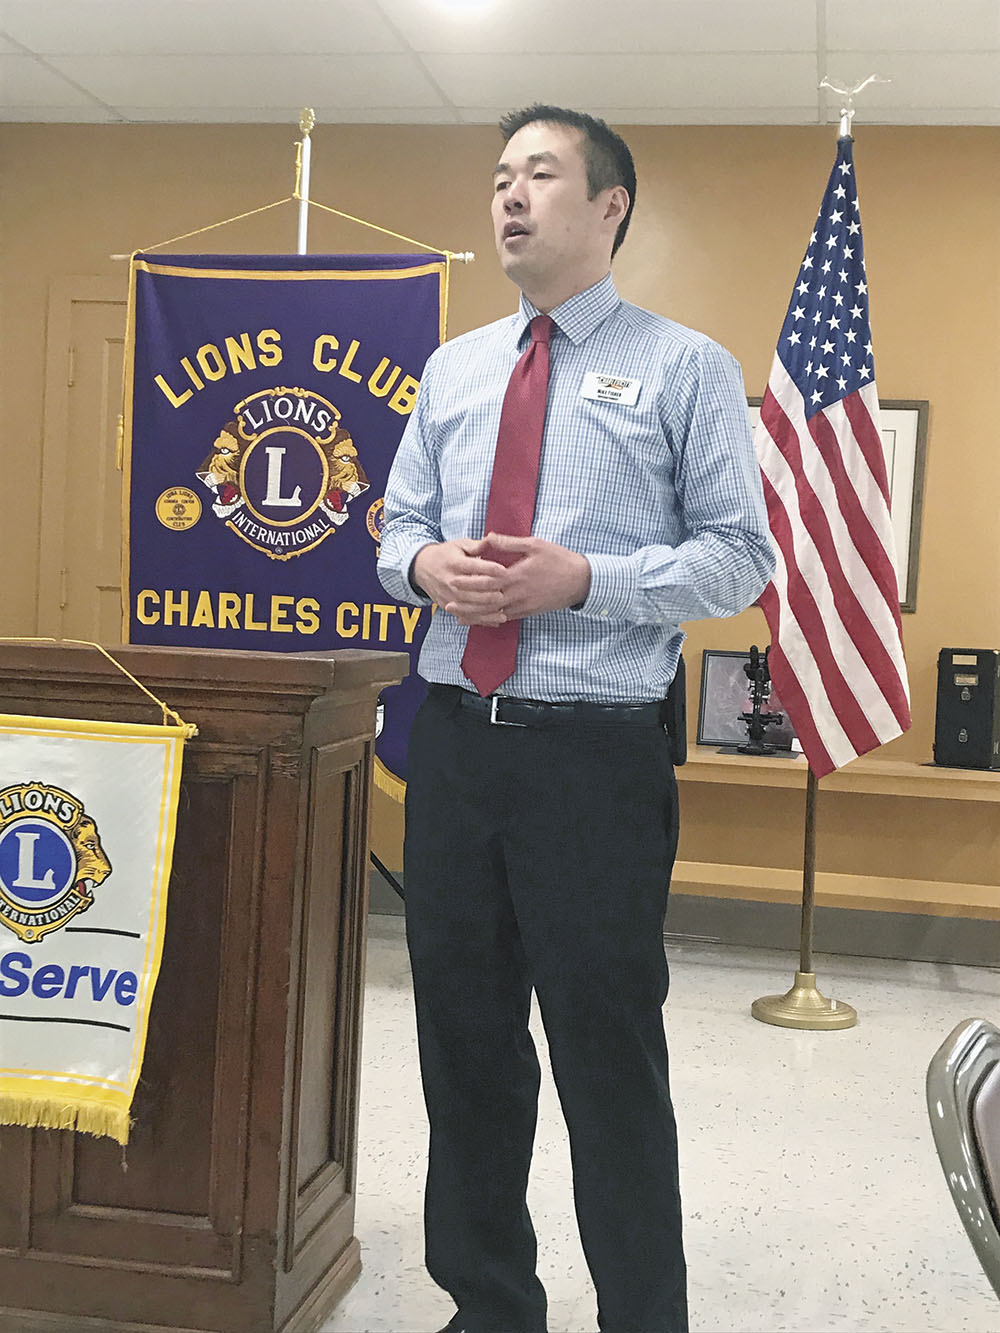 Charles City School Superintendent Fisher talks about test scores, building improvements